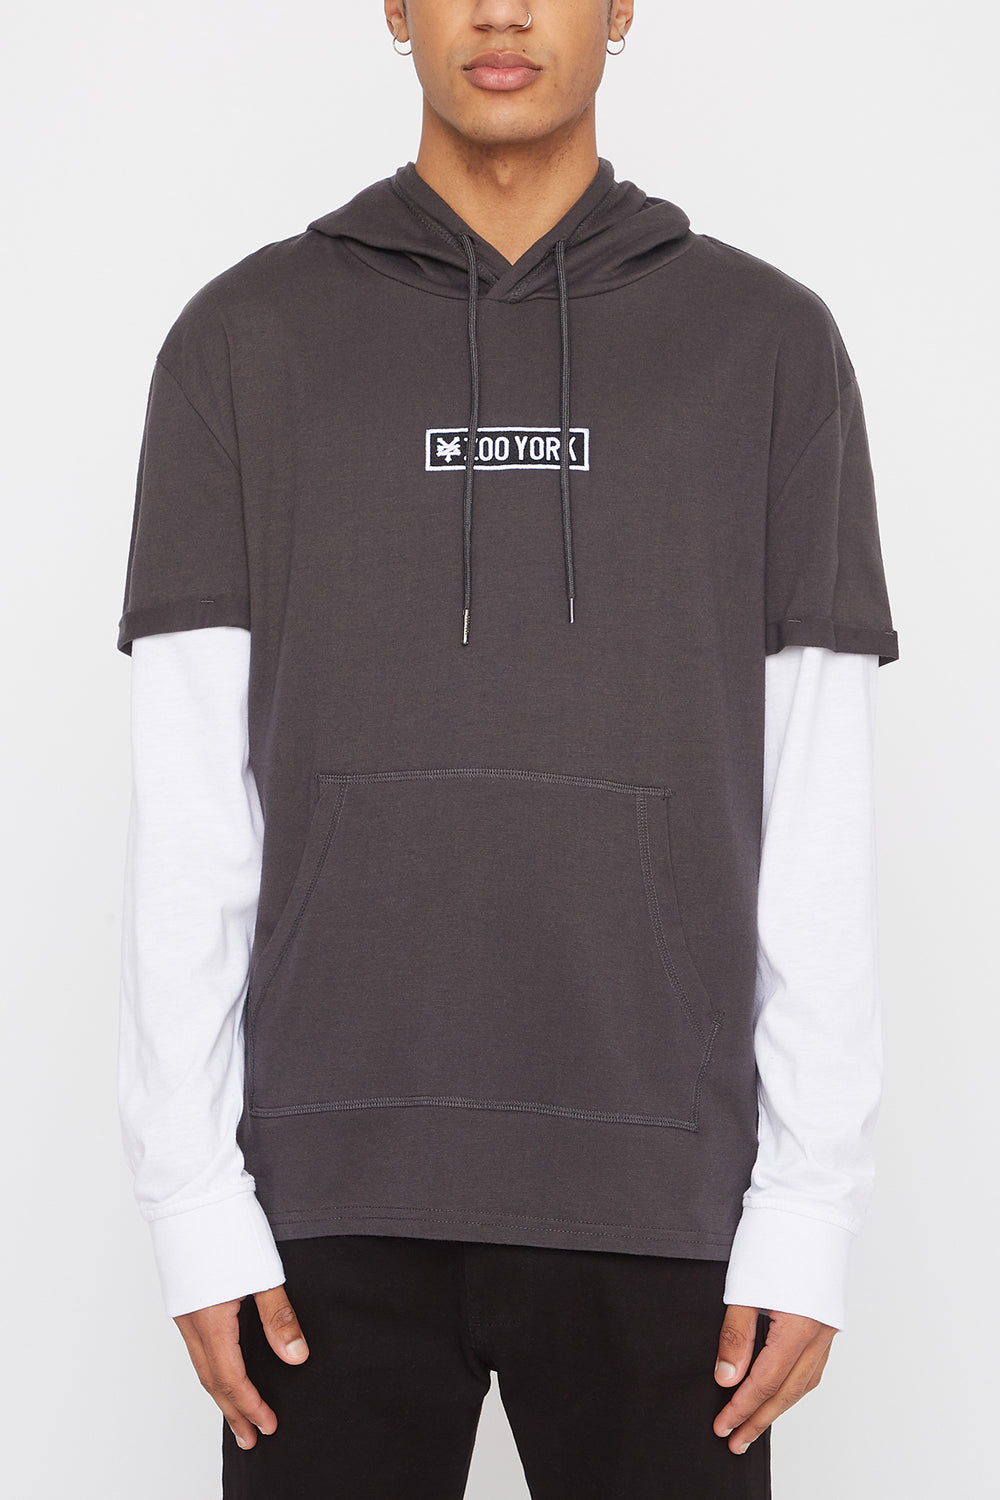 Zoo York Mens Patch Logo Hooded Long Sleeve Shirt Charcoal